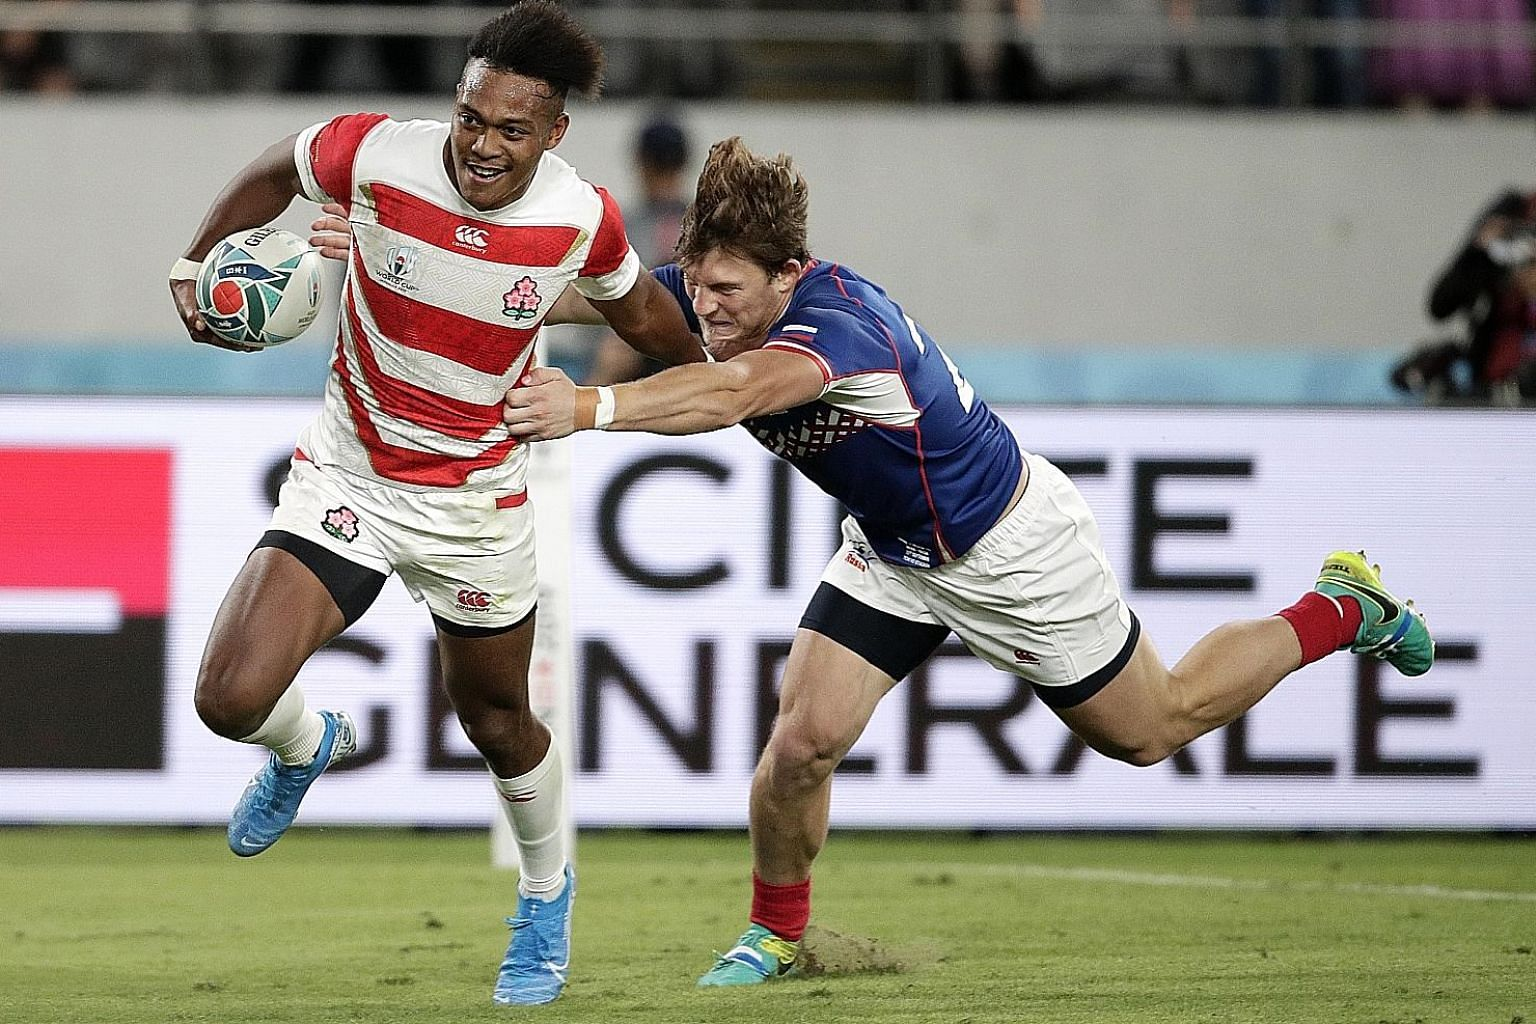 Japan's Kotaro Matsushima fending off Russia's Vladislav Sozonov to score his third try in the Rugby World Cup Pool A game at Tokyo Stadium last night. The utility back is the first player to score three tries in a World Cup opener.